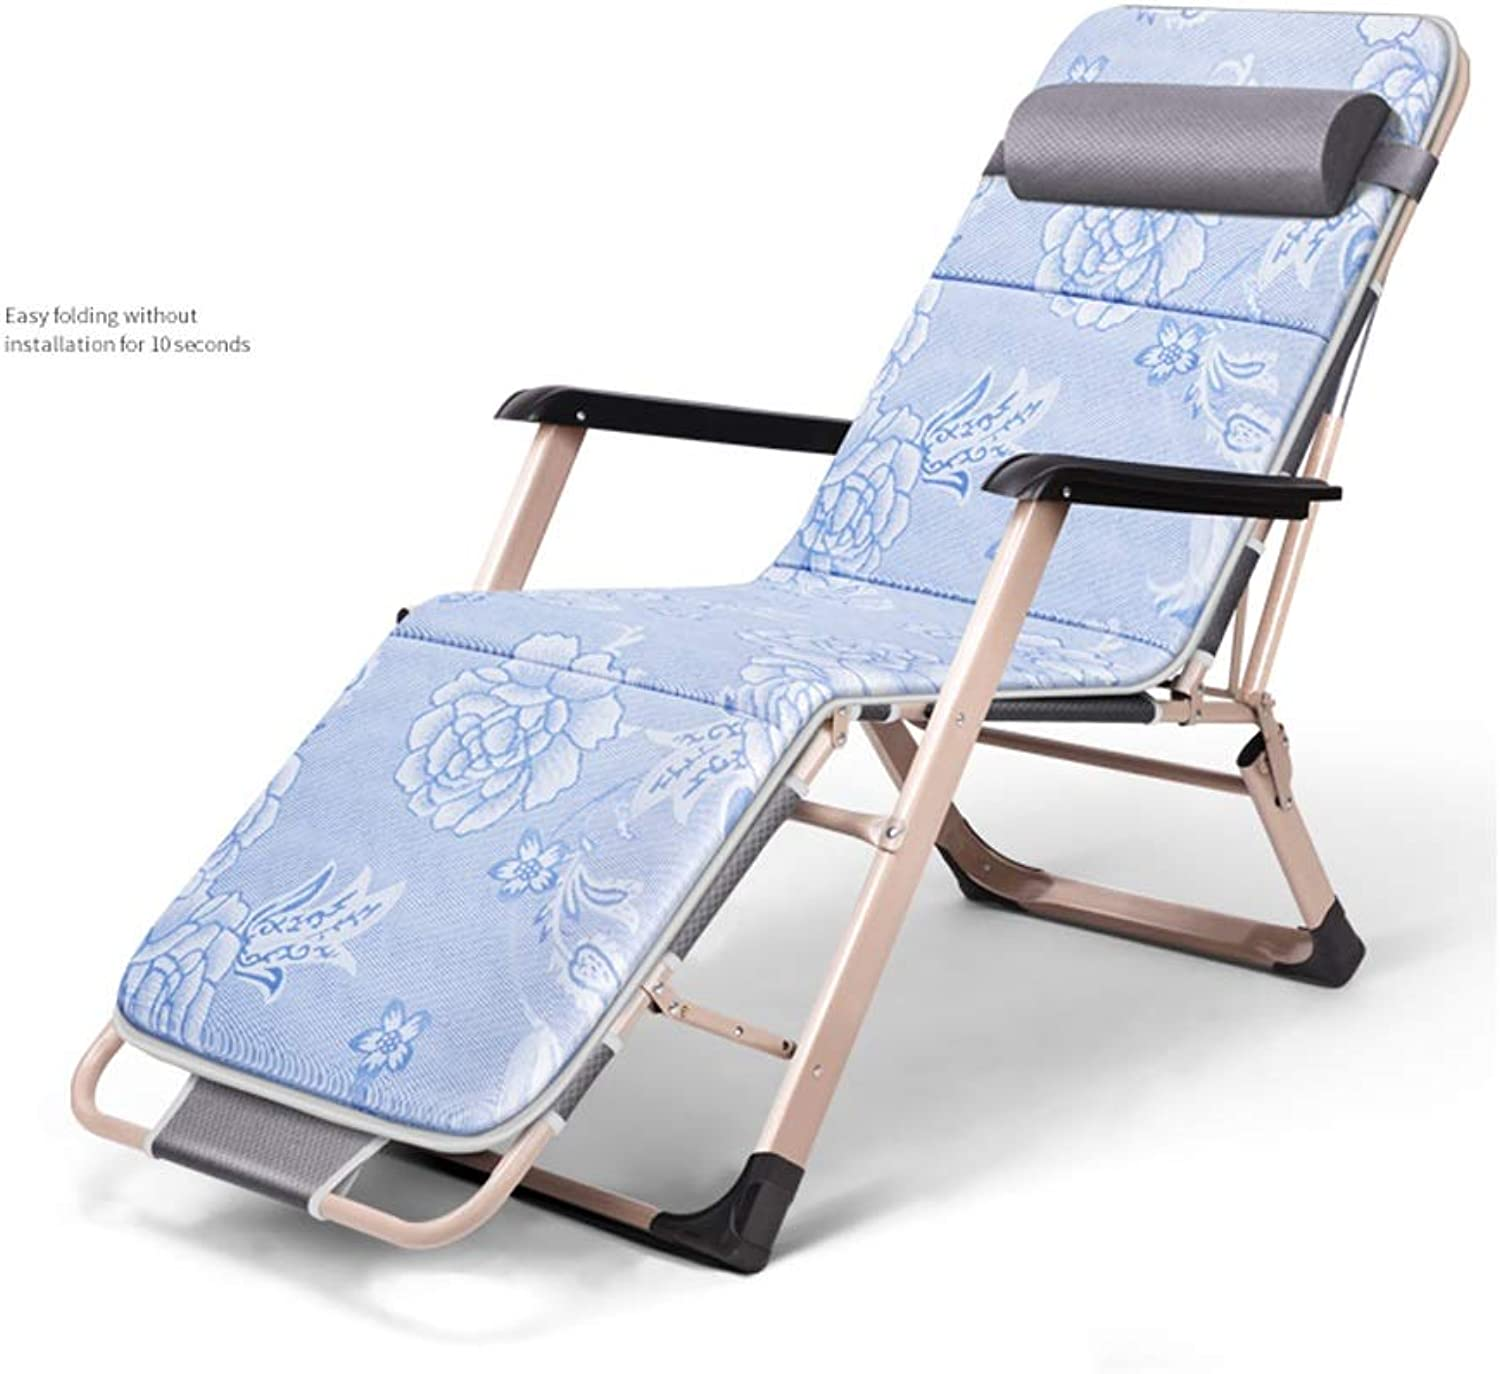 Single Outdoor Recliner with Ice Silk Pad,Simple Portable Folding Bed, Accompanying Bed, Cotton Pad Removable